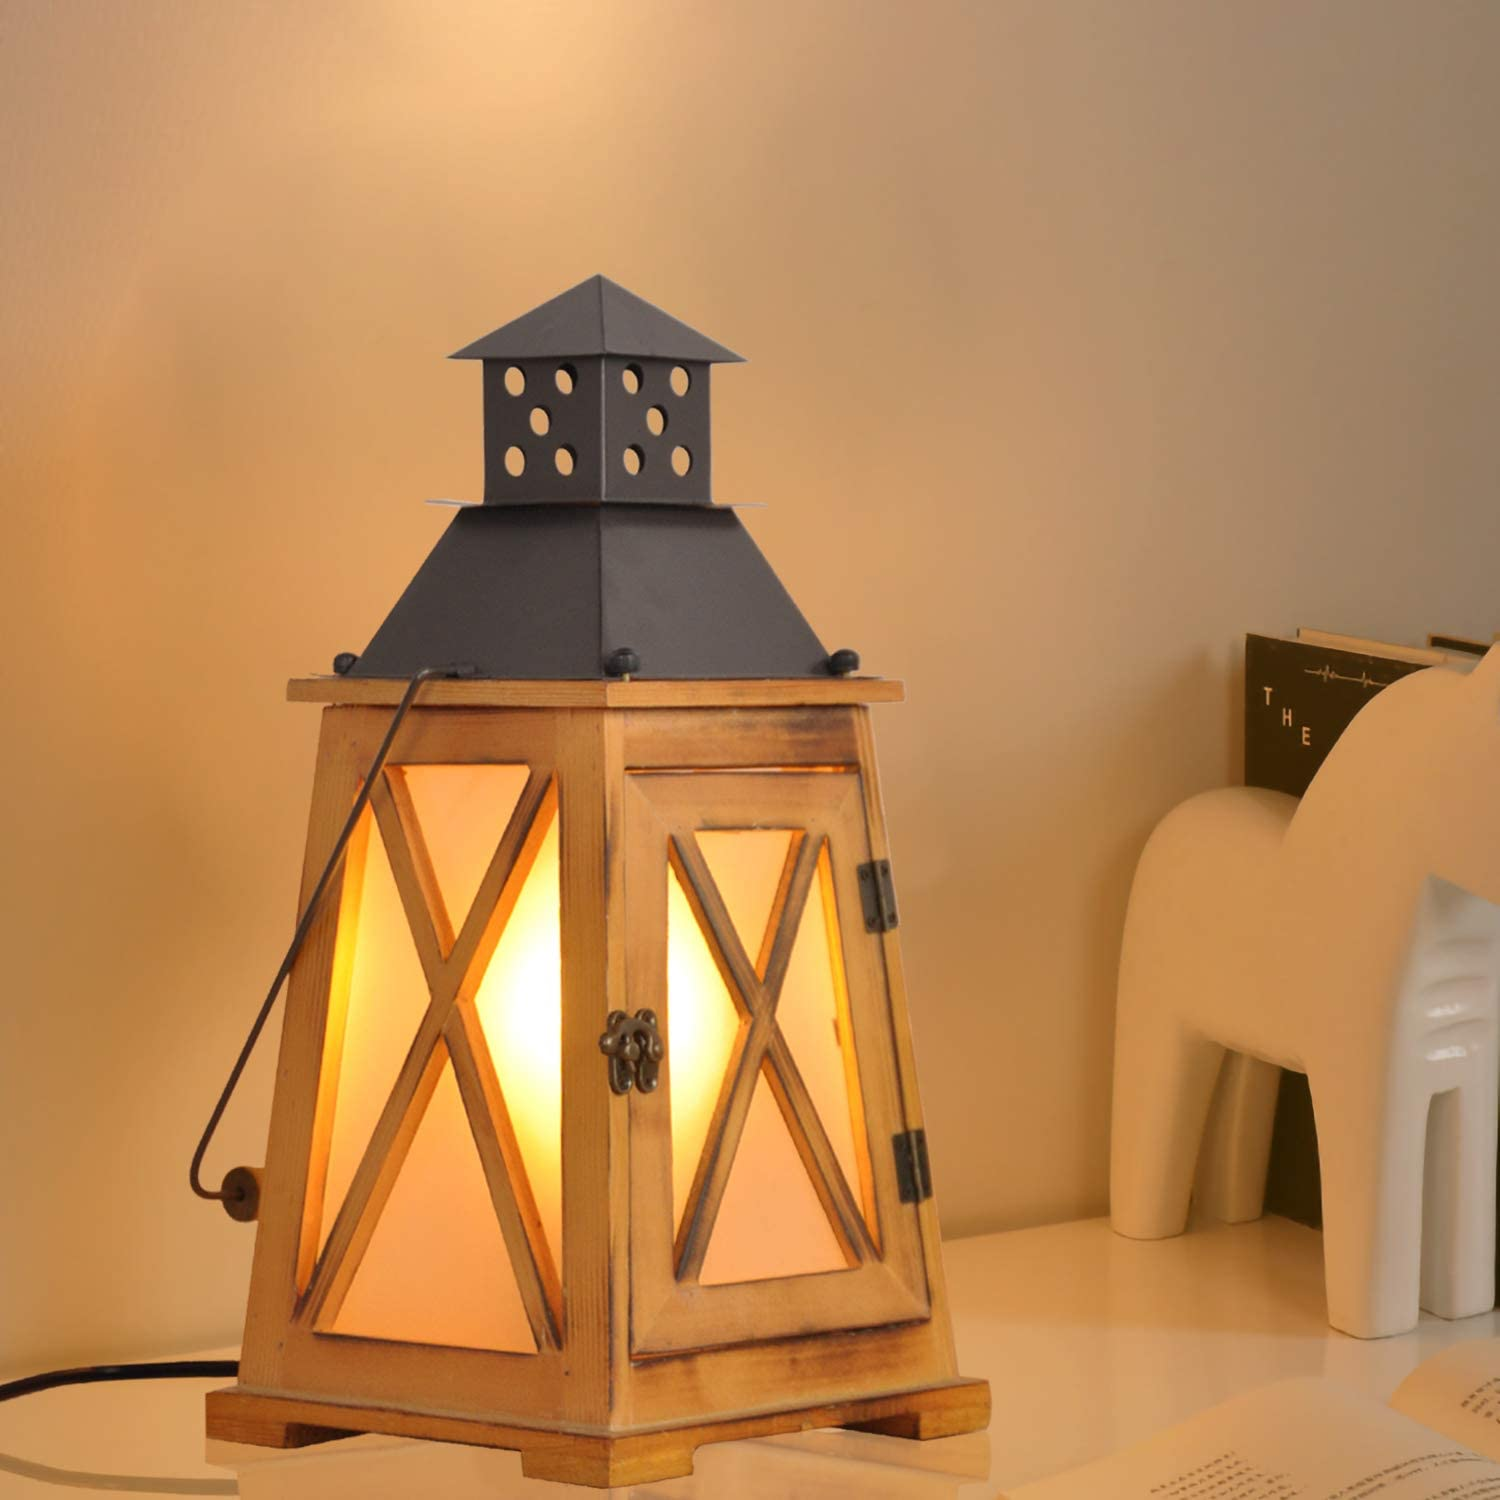 Vintage Lantern Lights Nautical Decorative Industrial Retro Light Fixture, Rustic Table Lamp Decor with Cord Cable, Indoor Outdoor Hanging Wood Desk Lighting